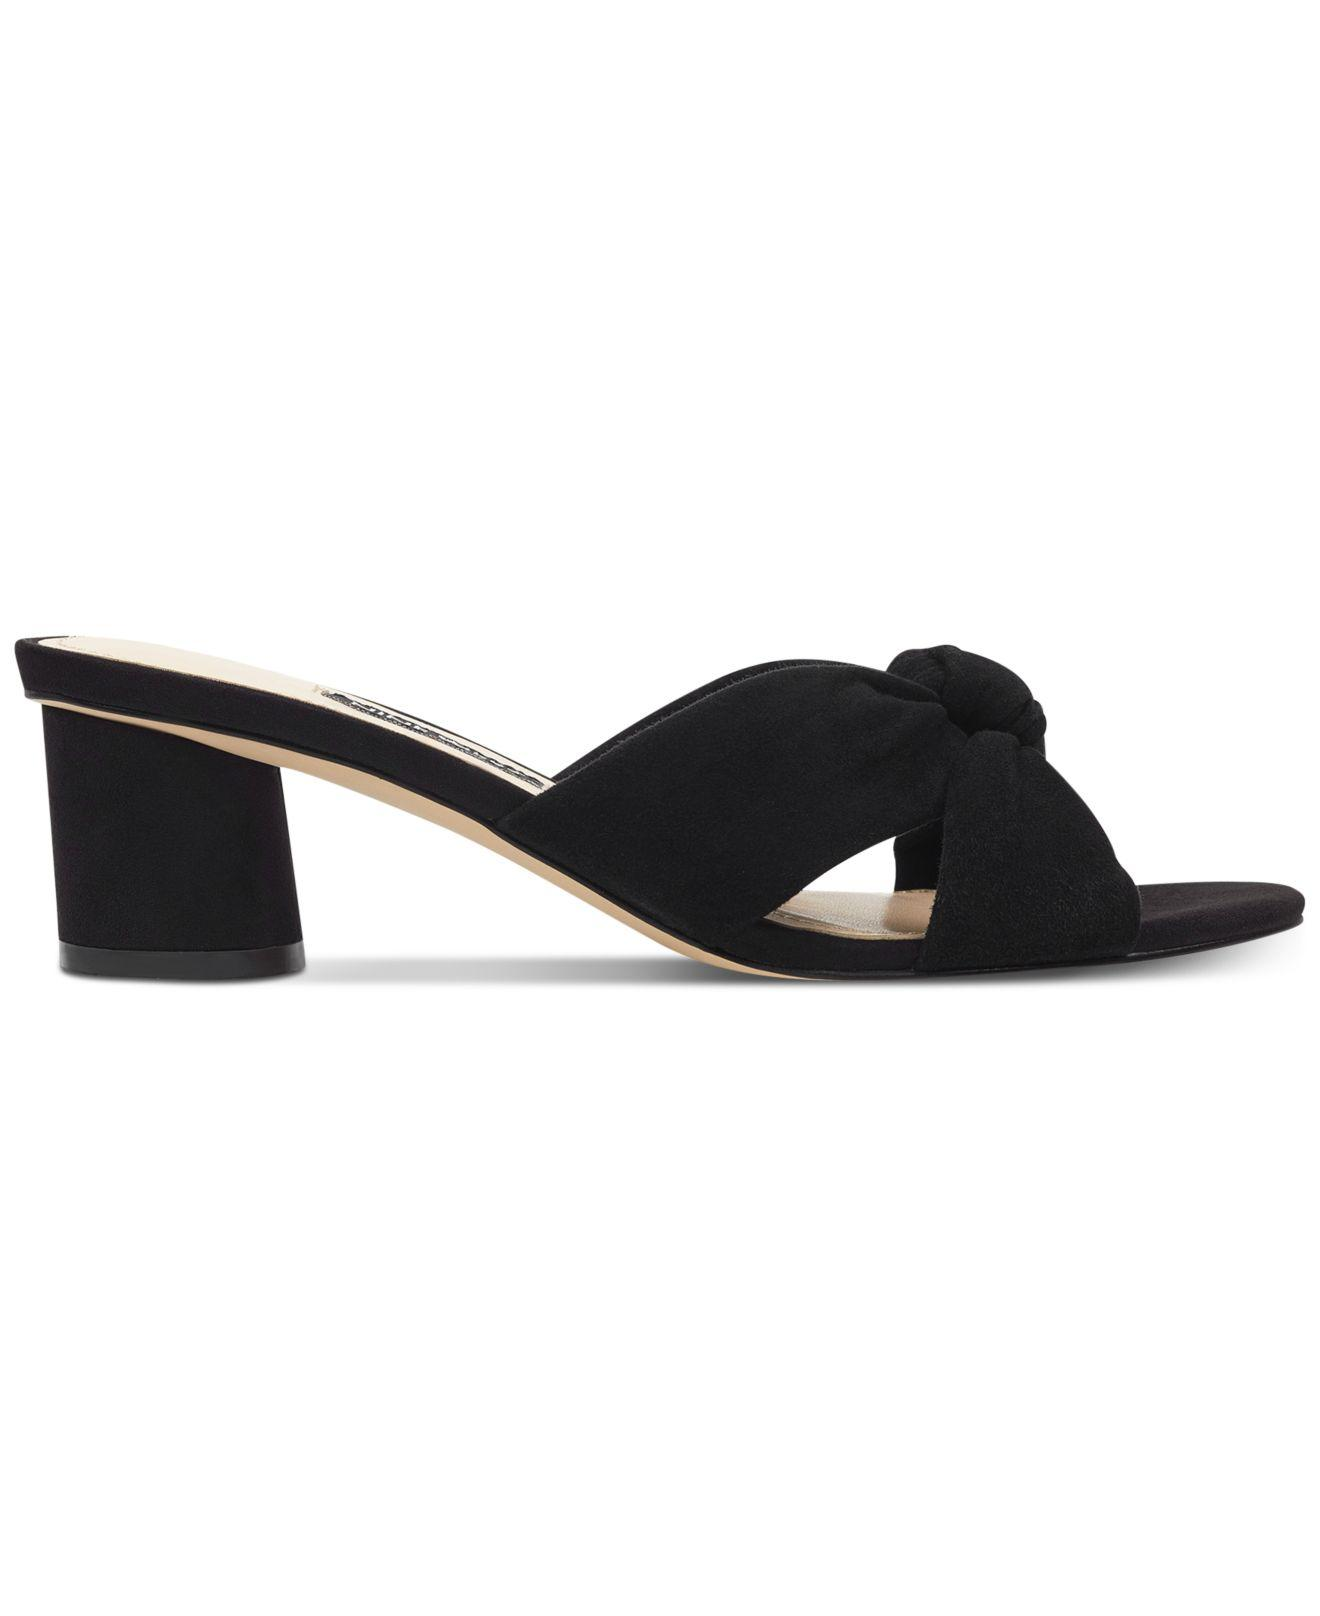 b0660f51a12 Lyst - Nine West Kayla Knotted Dress Sandals in Black